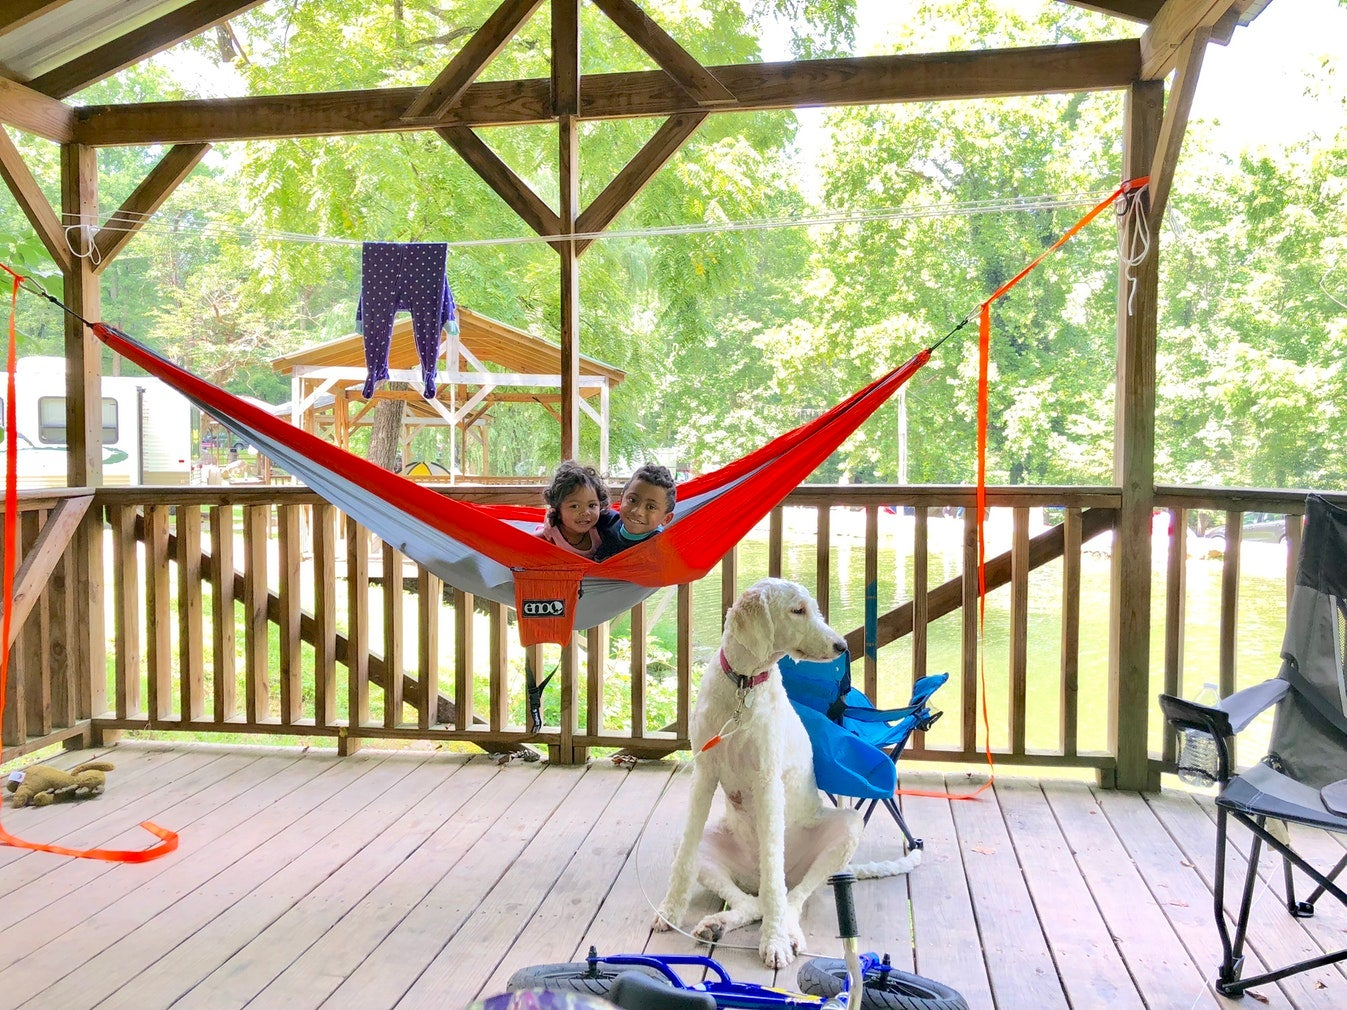 two young children smiling from red hammock hung on deck as white dog sits in the foreground